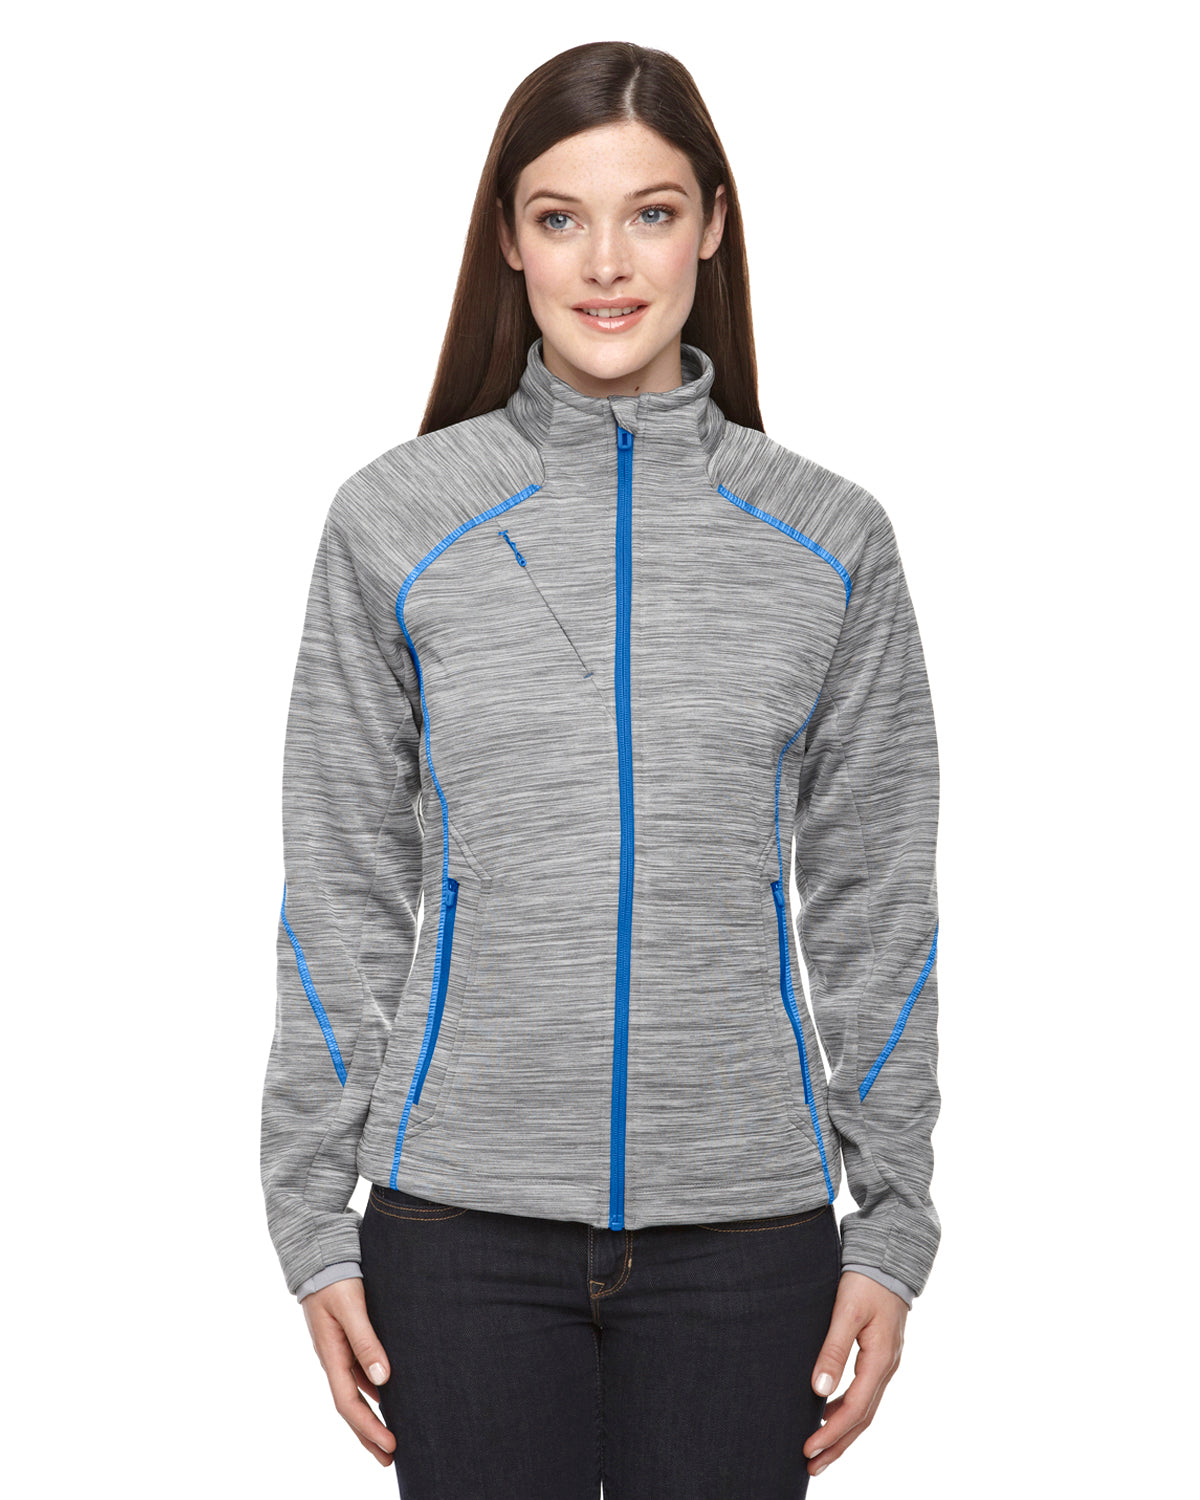 NORTH END LADIES FLUX MELANGE BONDED FLEECE JACKET